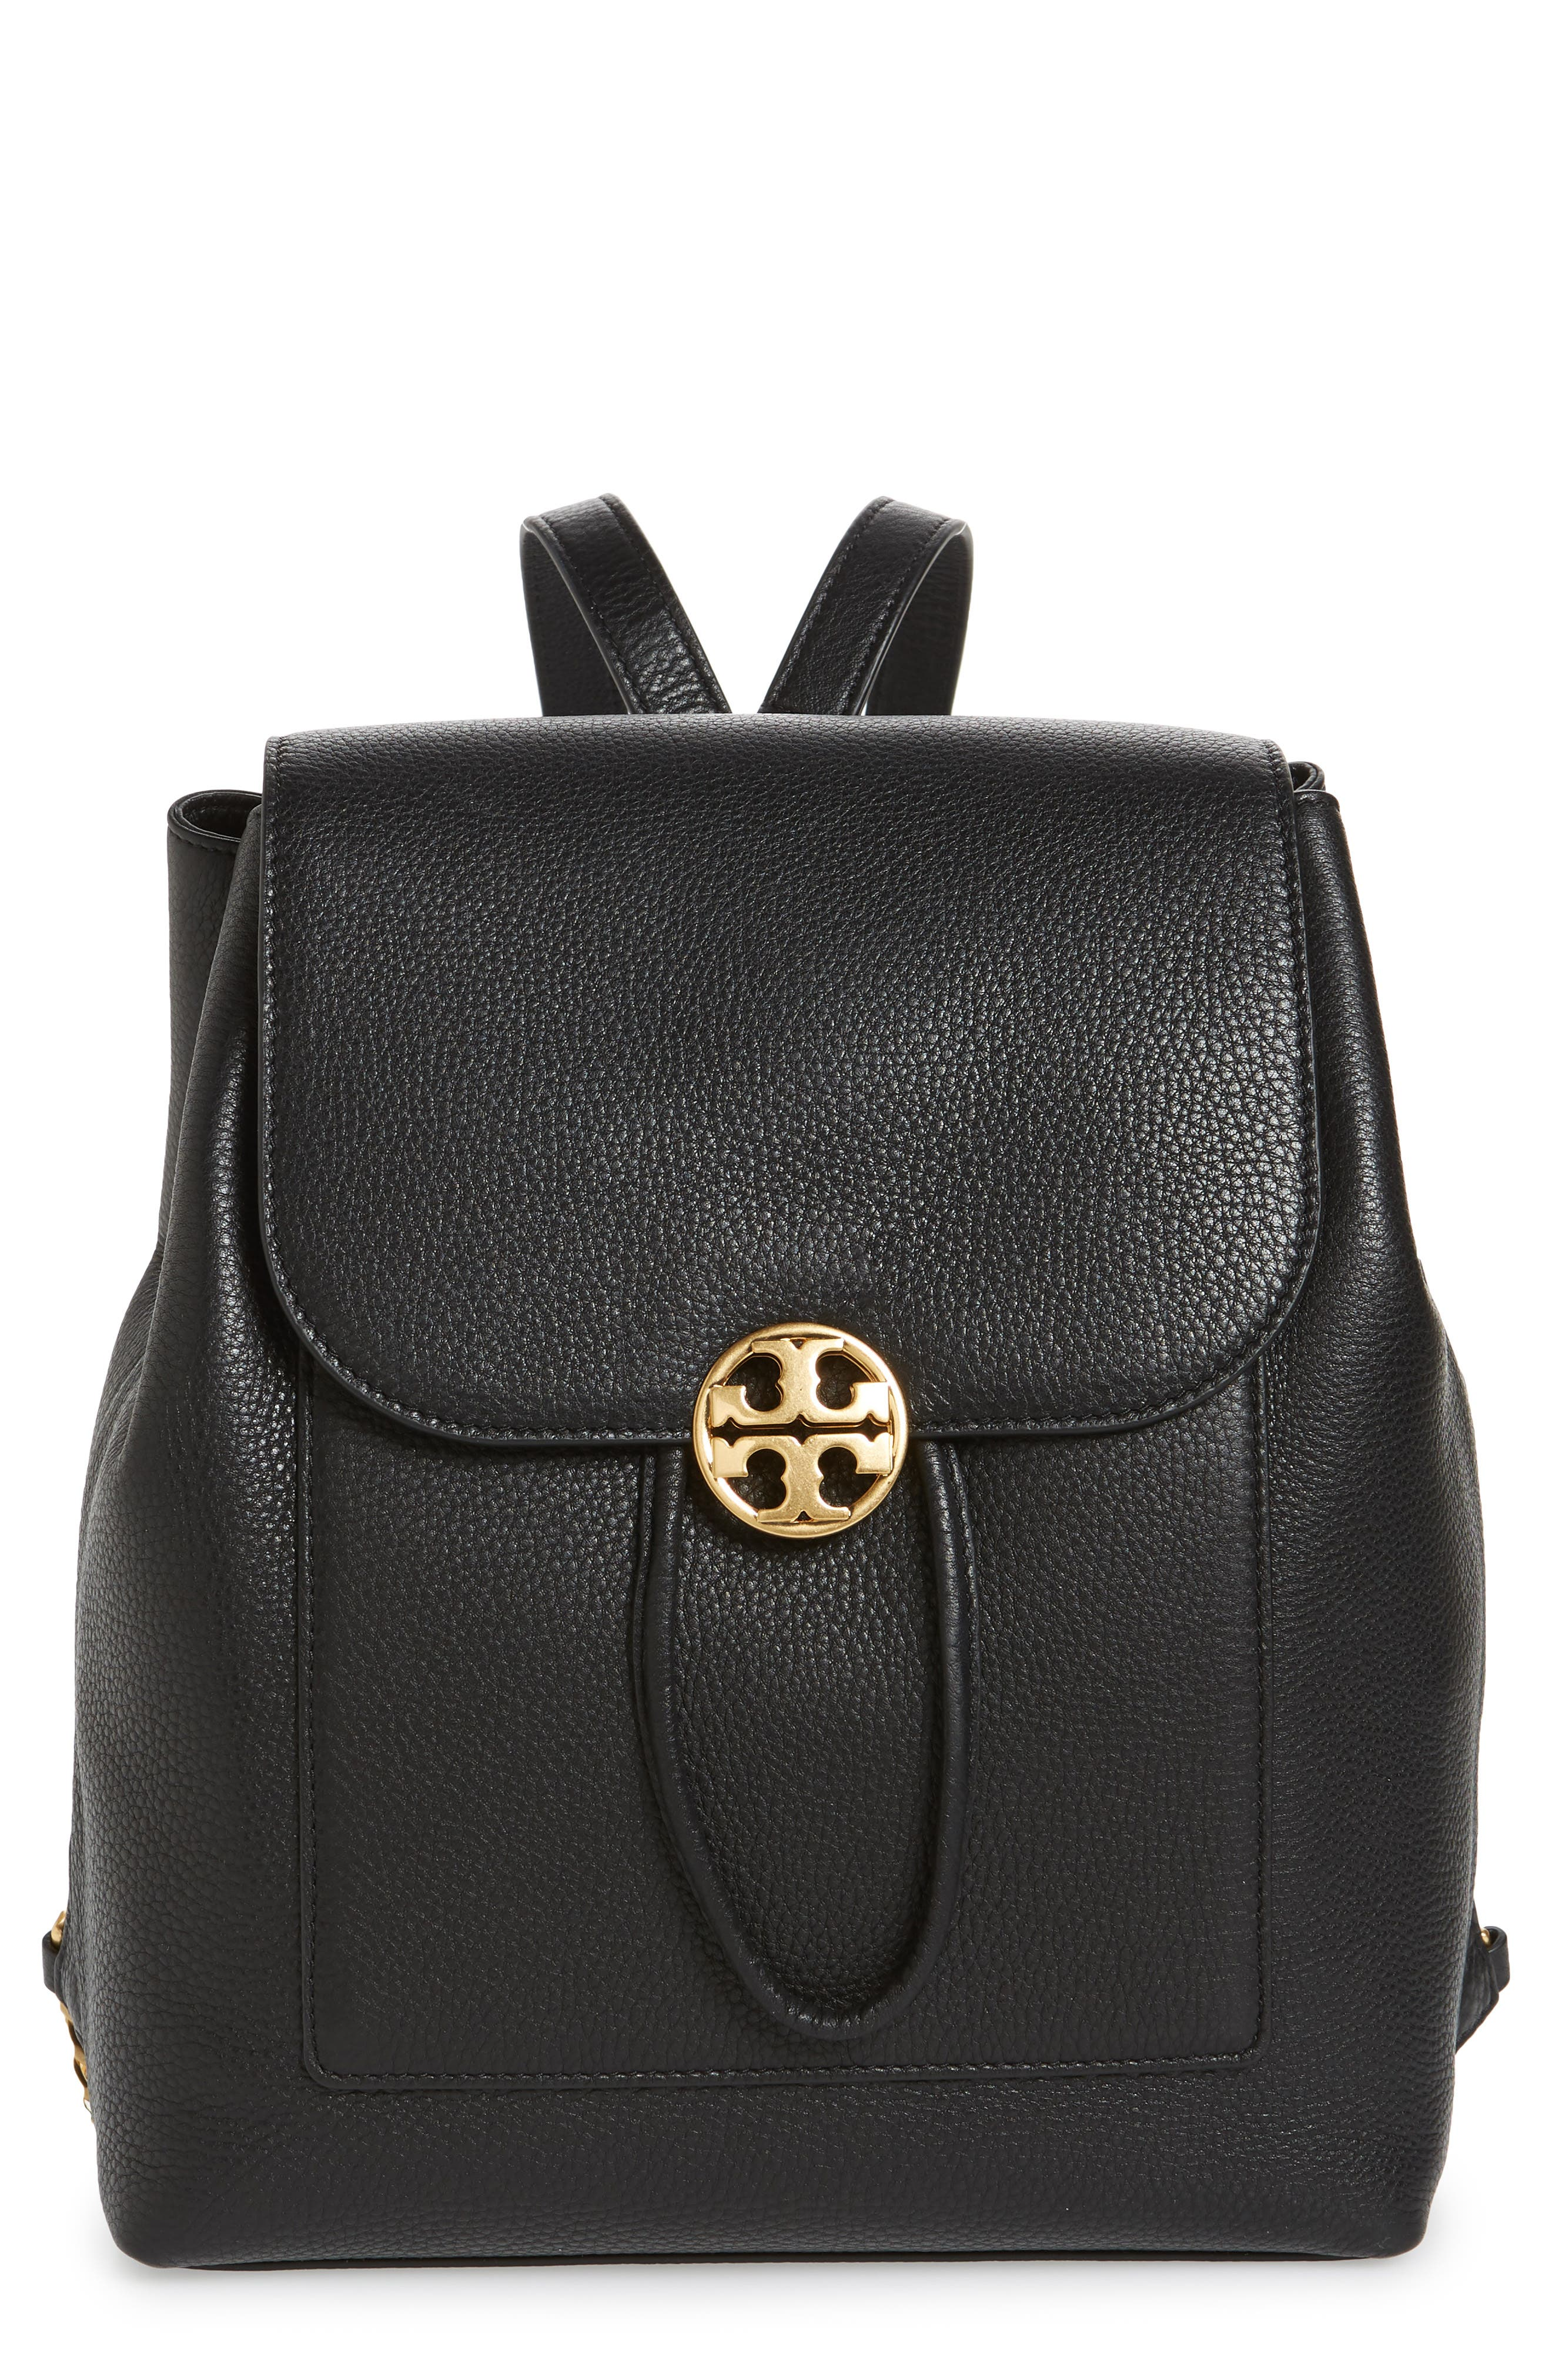 Chelsea Leather Backpack,                         Main,                         color, 001